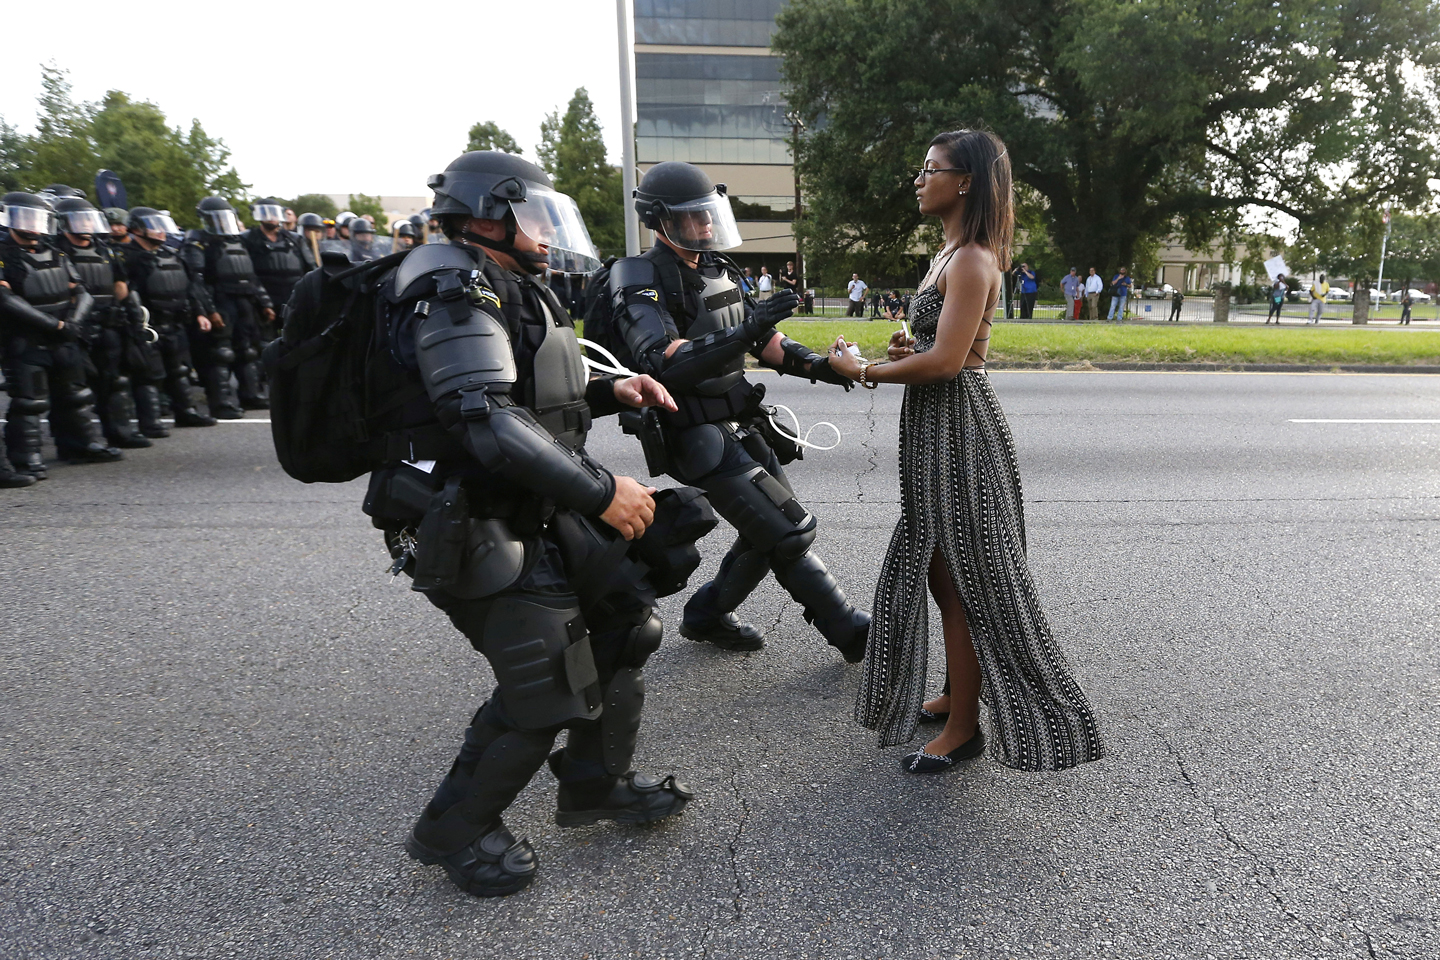 https://theintercept.com/wp-uploads/sites/1/2016/07/baton-rouge-protester.jpg